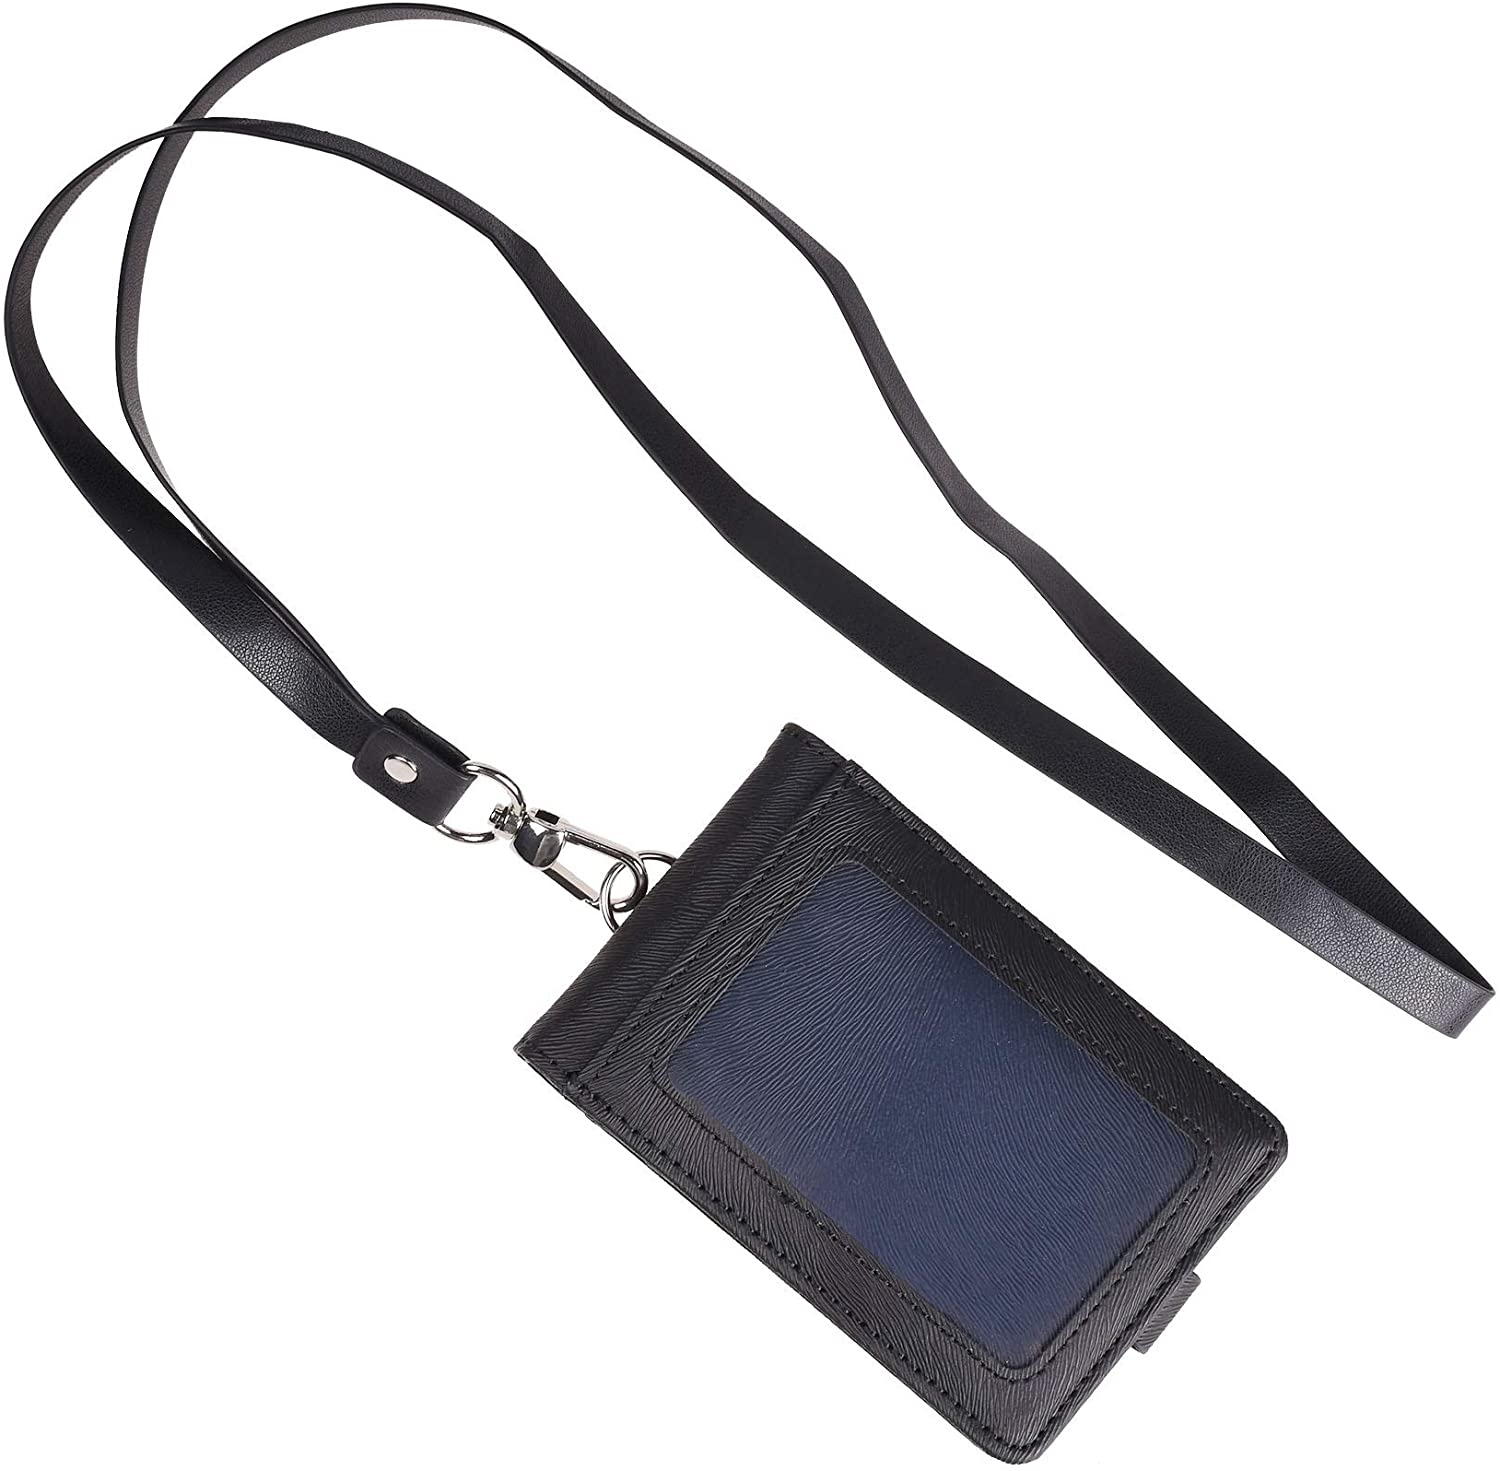 COSMOS Black Color Folding PU Leather Vertical ID Card Holder with 2 ID Window and 3 Card Slots, with PU Neck Strap Band Lanyard